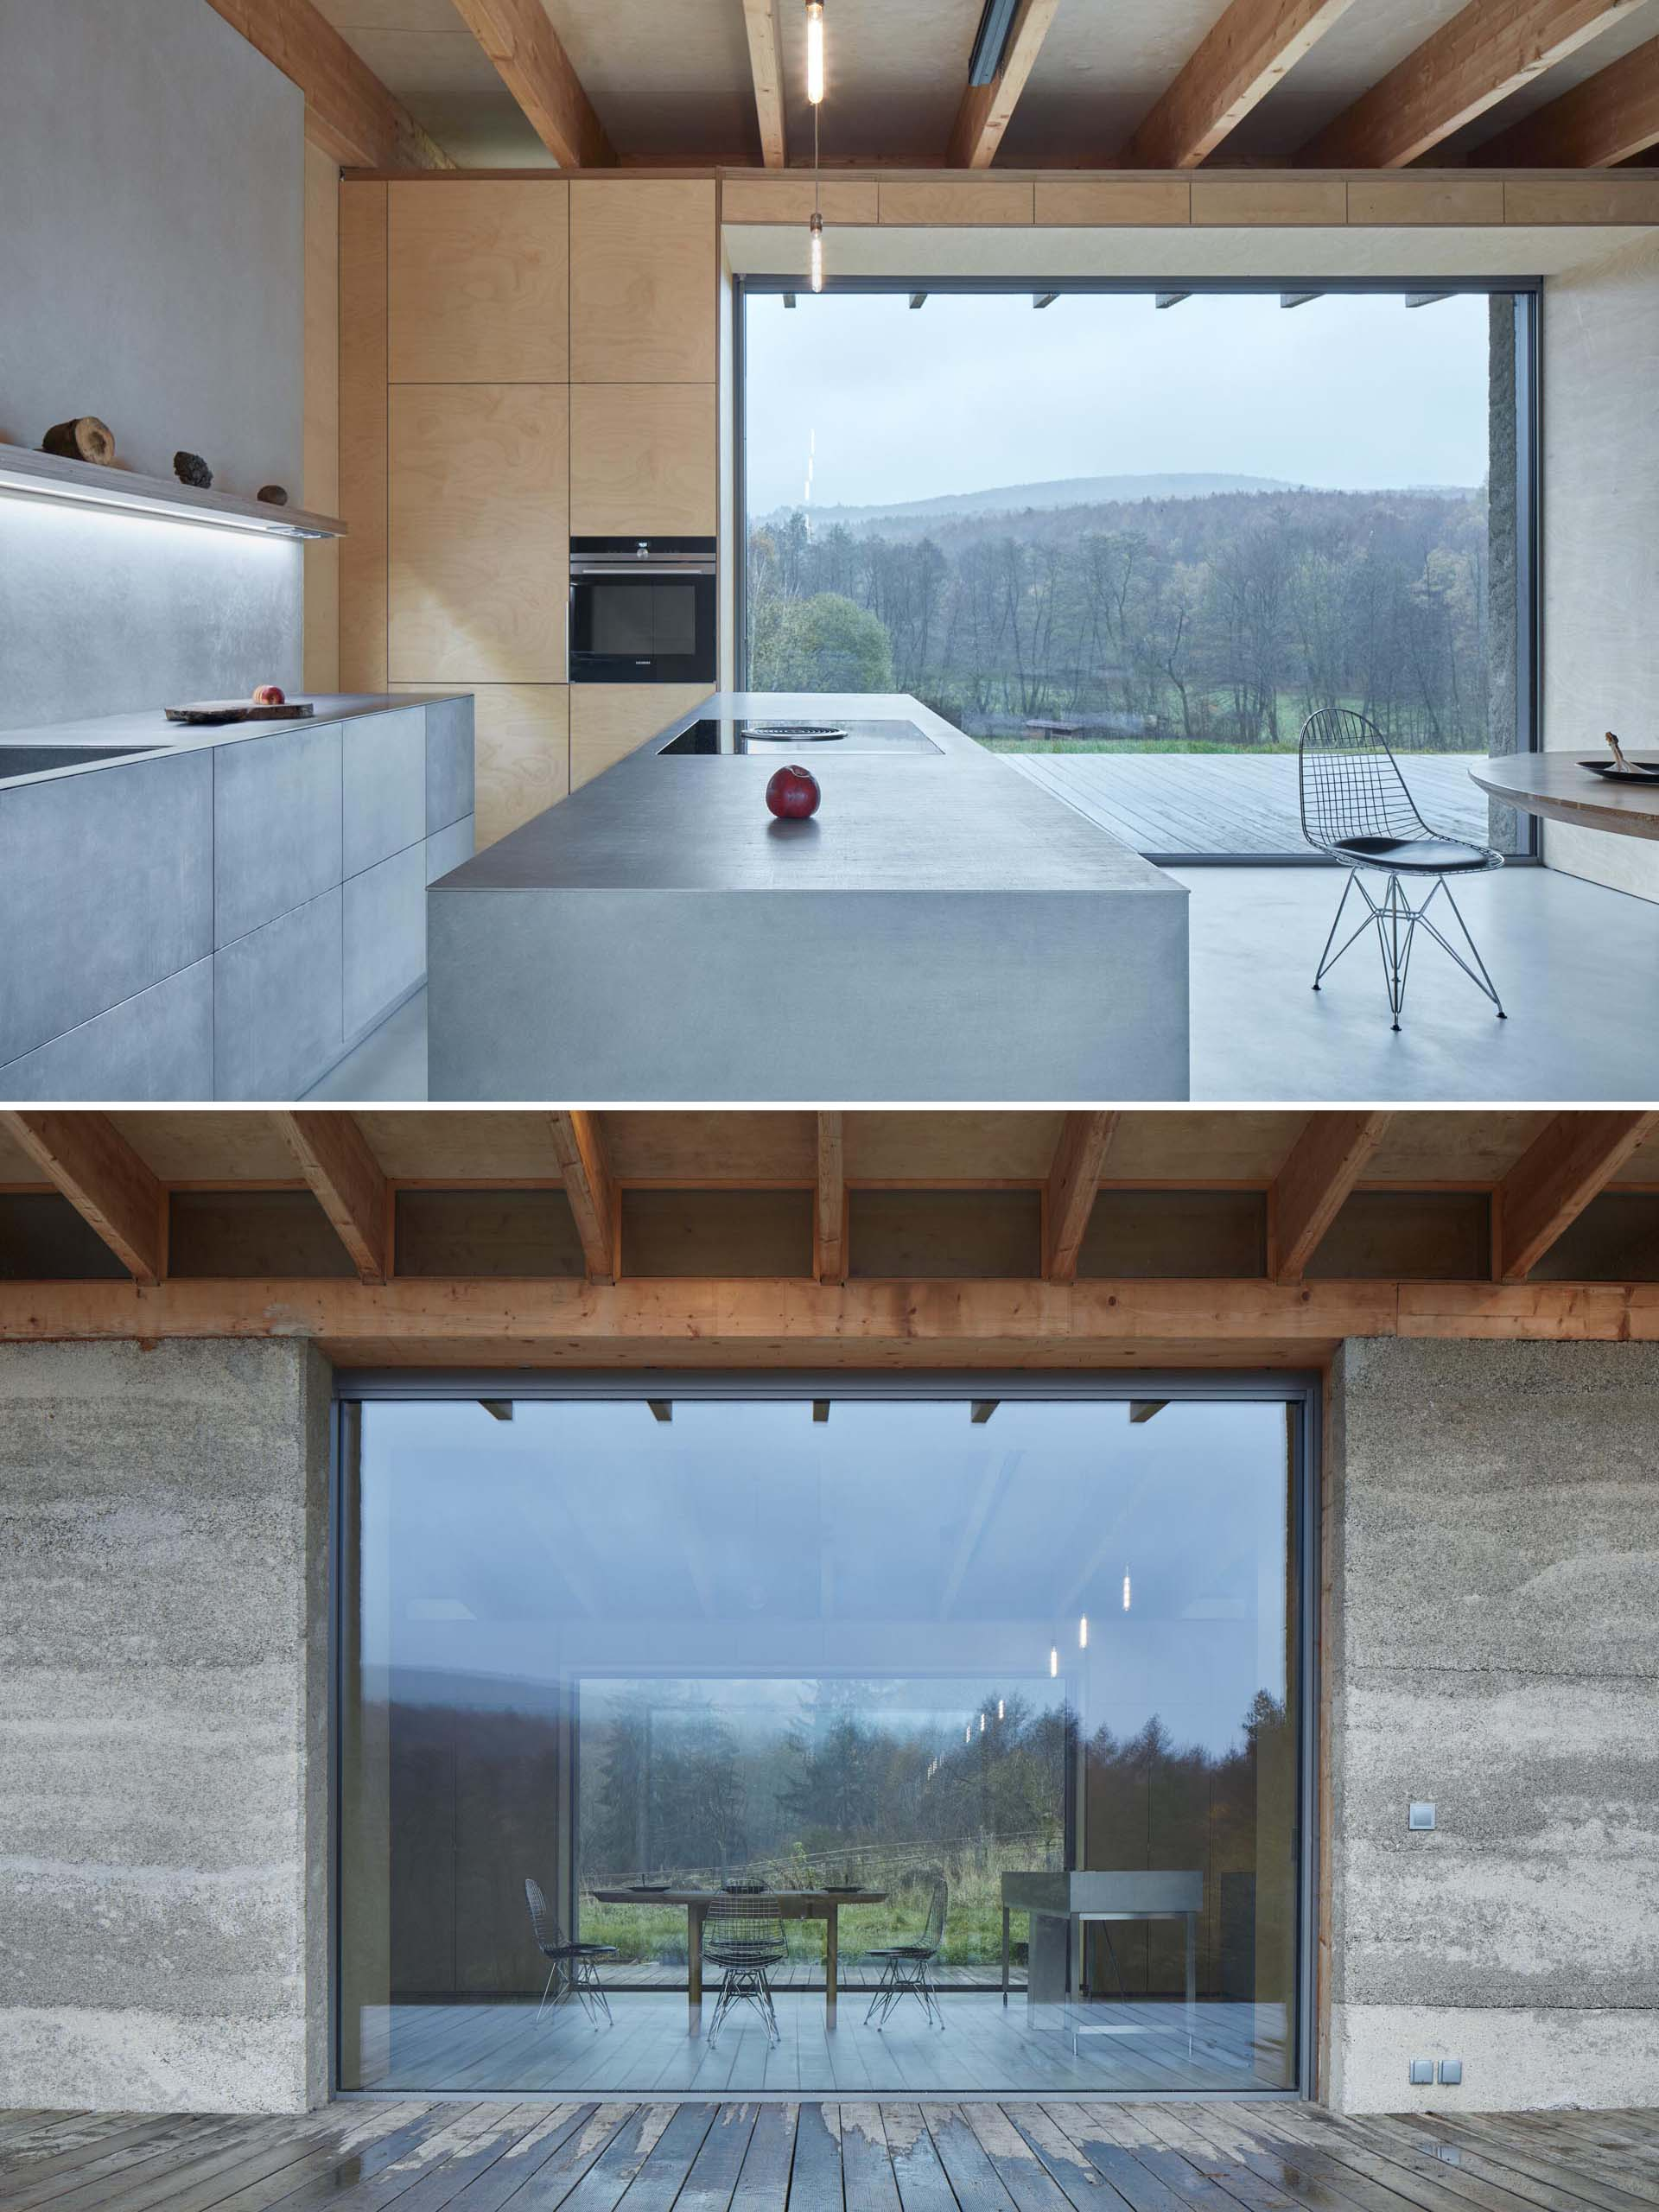 A modern cabin with a stainless steel kitchen and plywood walls.